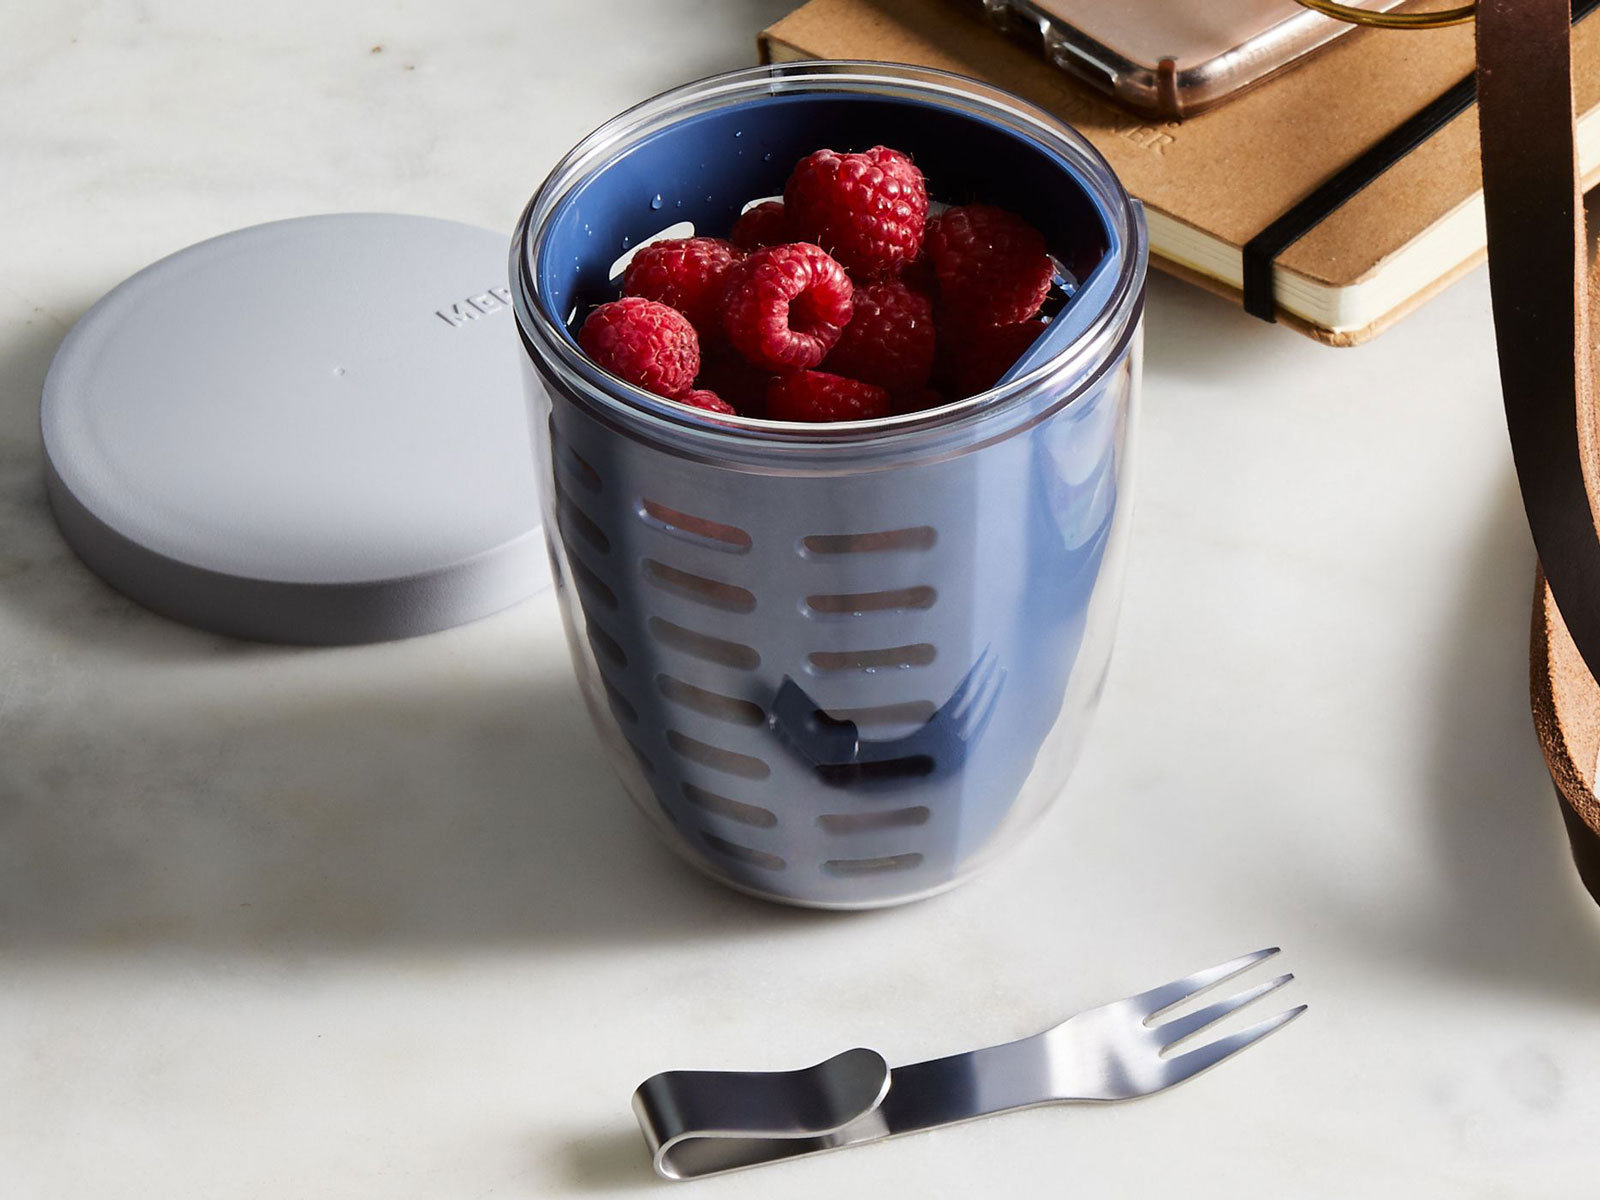 These Portable Produce Containers Will Keep Your Fruits and Veggies Fresh While on the Go